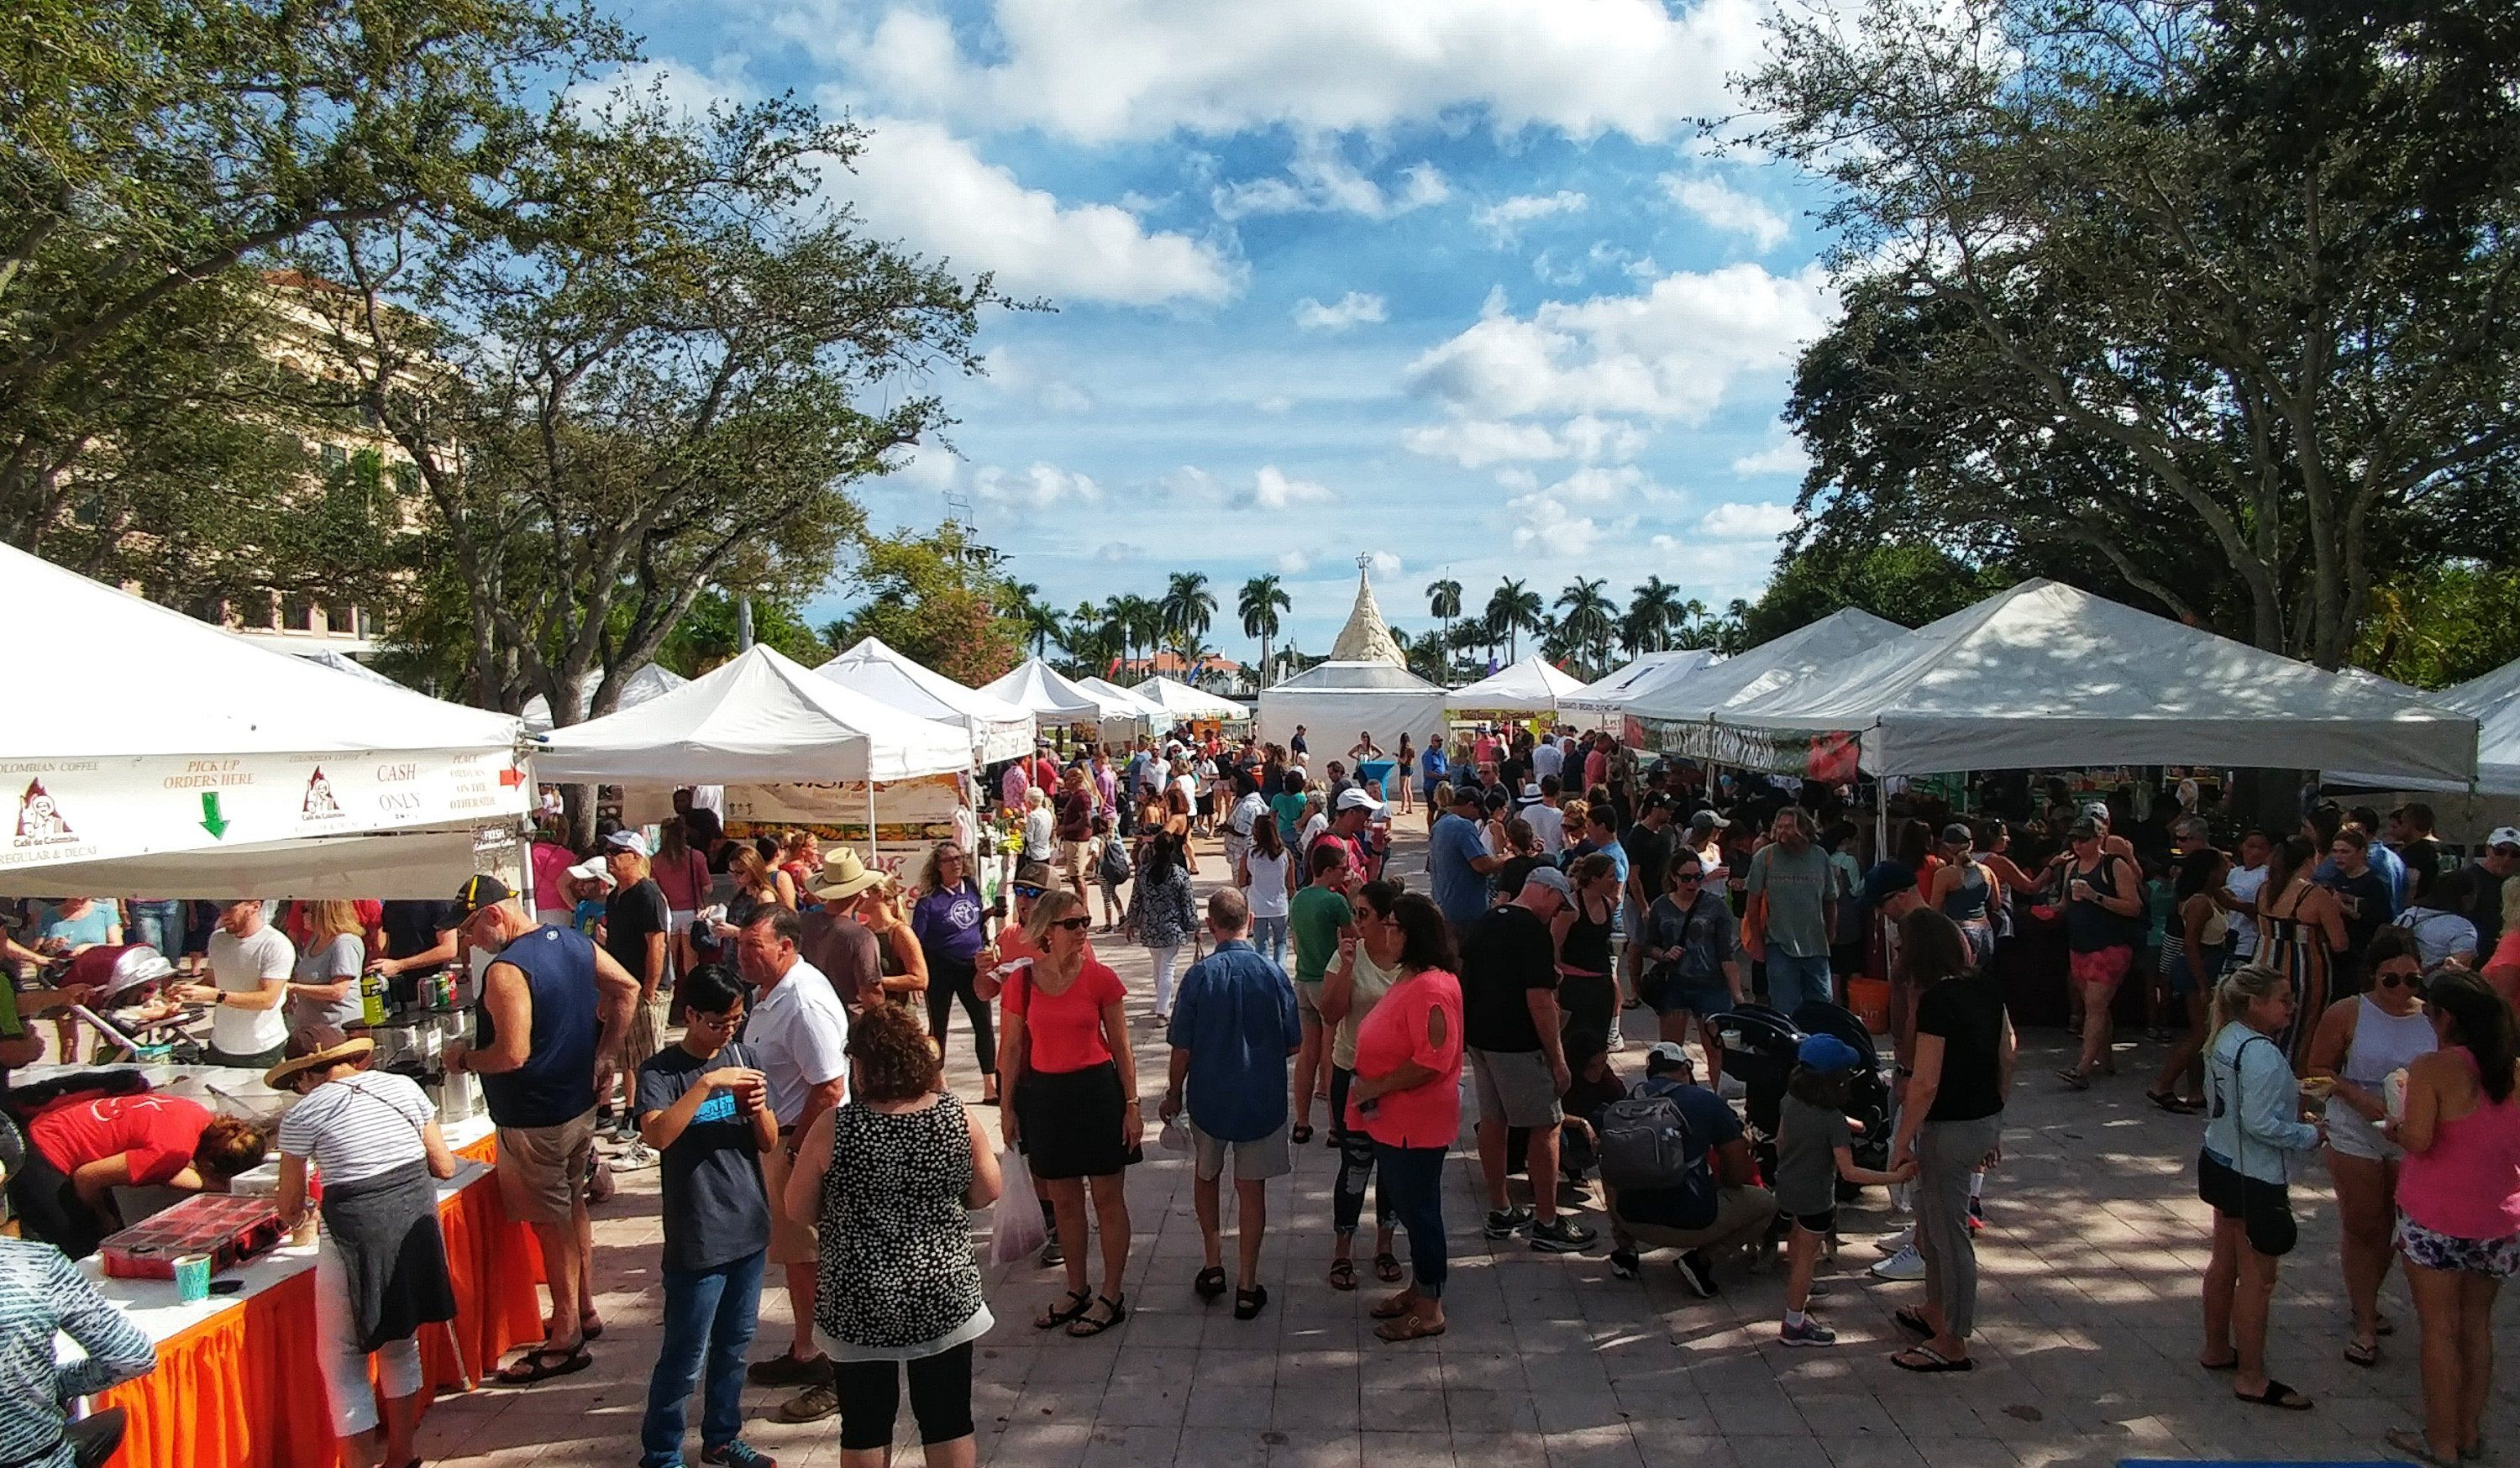 Packed Green Market For Smallbusinesssaturday Ilovewpb Clematis Street Small Business Saturday Green